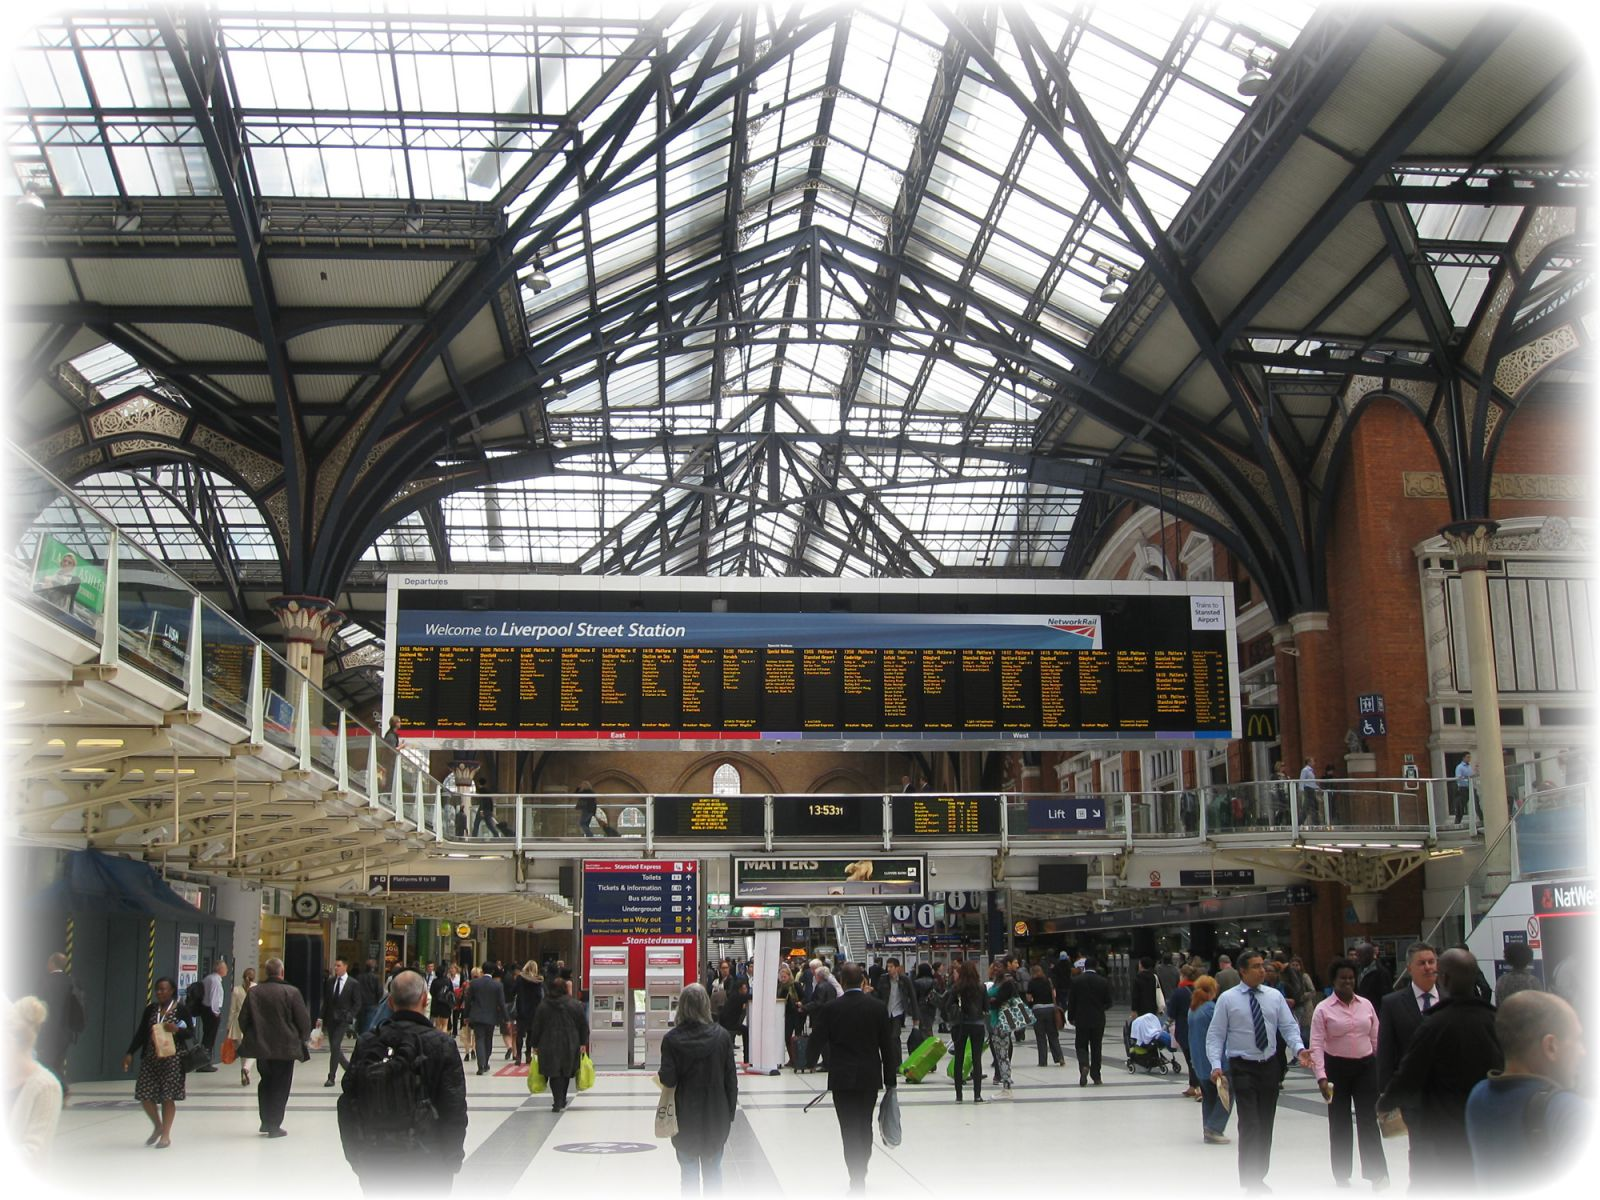 Liverpool St Station, City of London